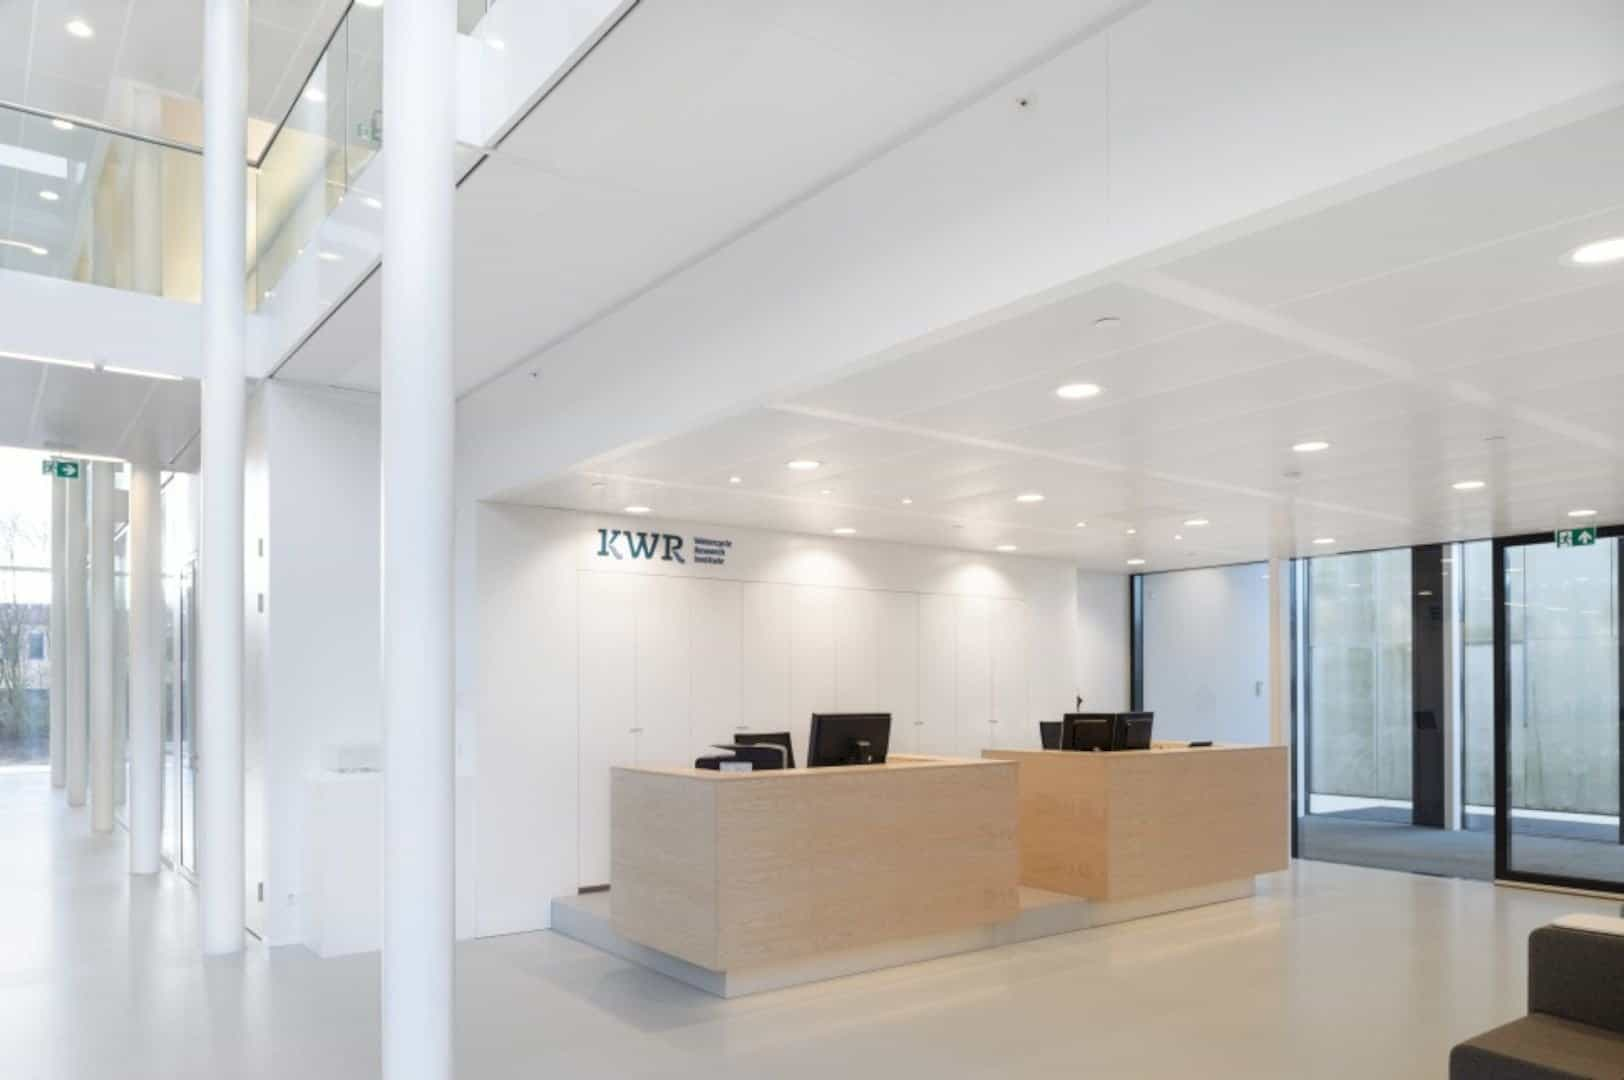 Kwr Transparent Office Interior Reflecting Kwrs Technical And Scientific Process 10